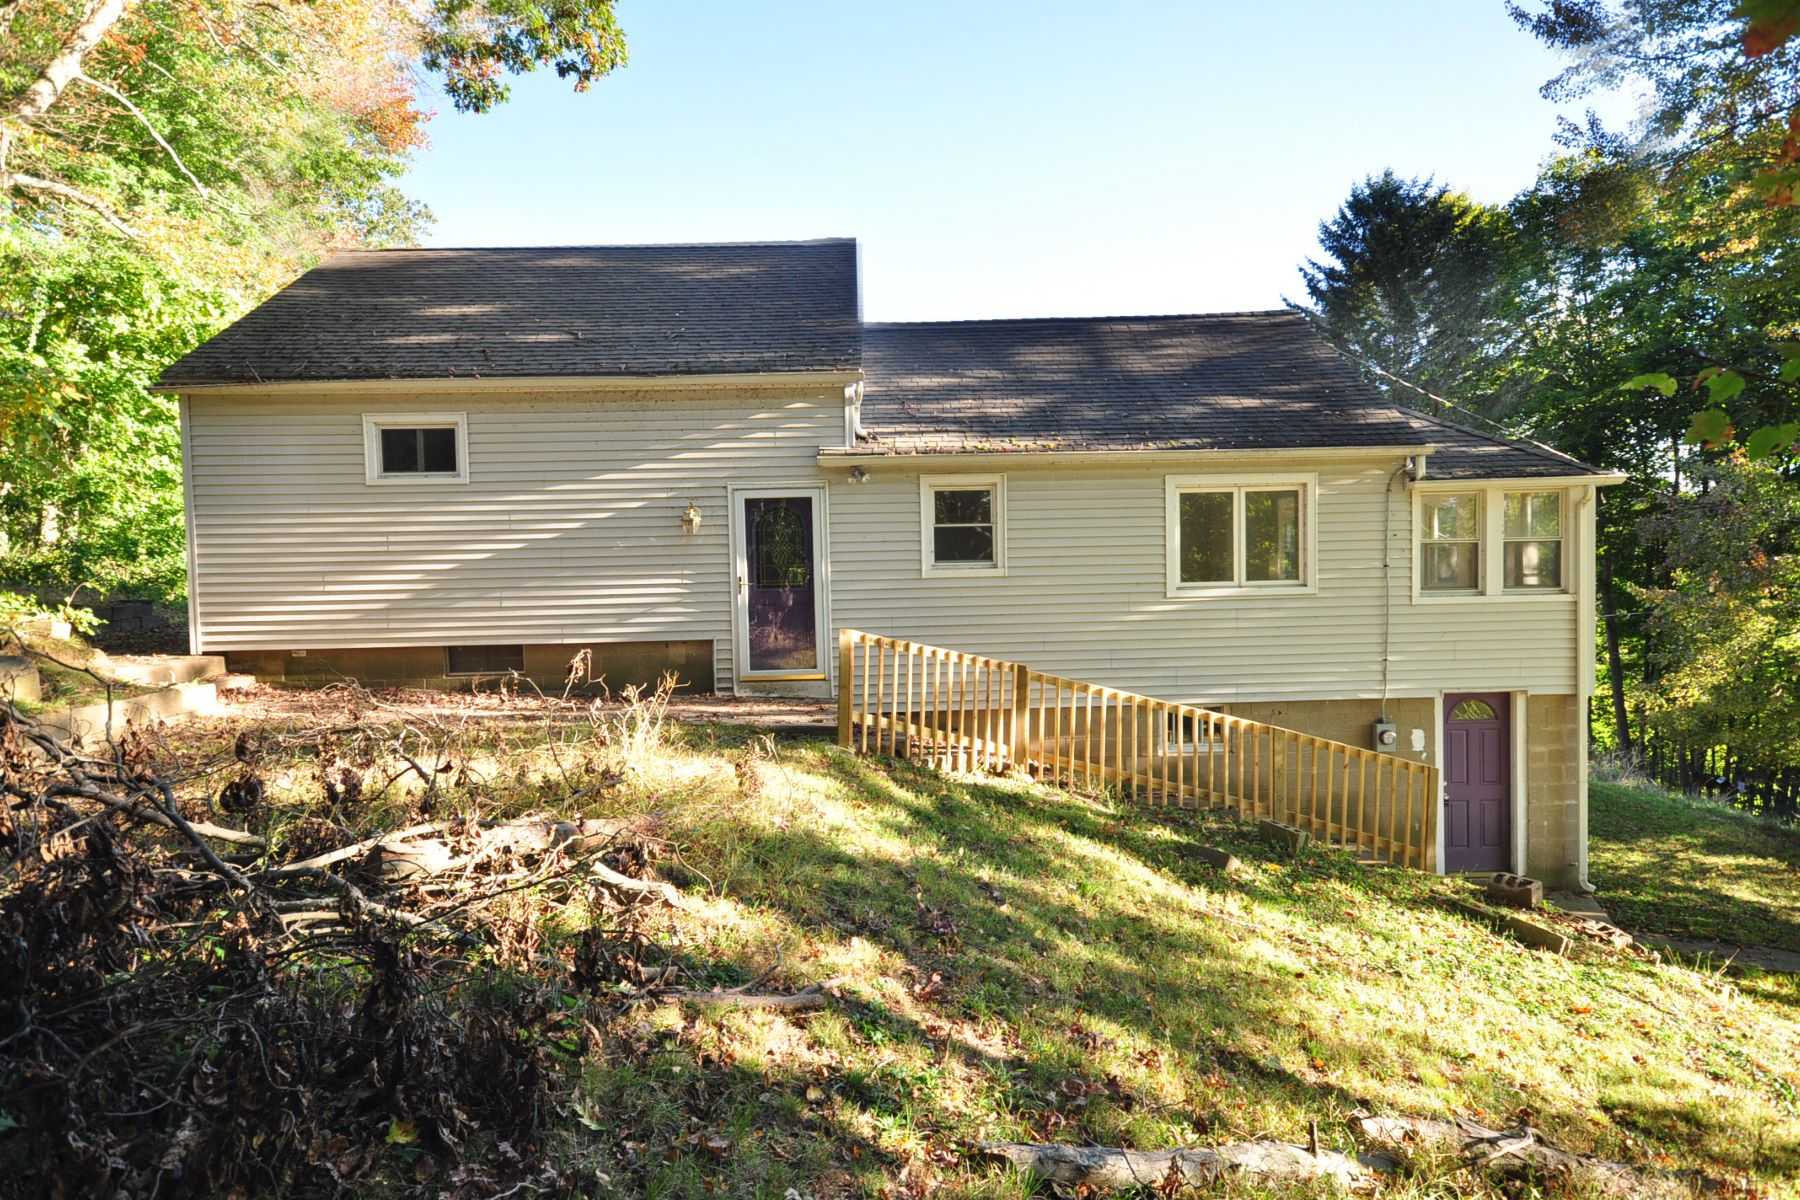 Single Family Home for Sale at New Fairfield Ranch 62 Hudson Drive New Fairfield, Connecticut 06812 United States